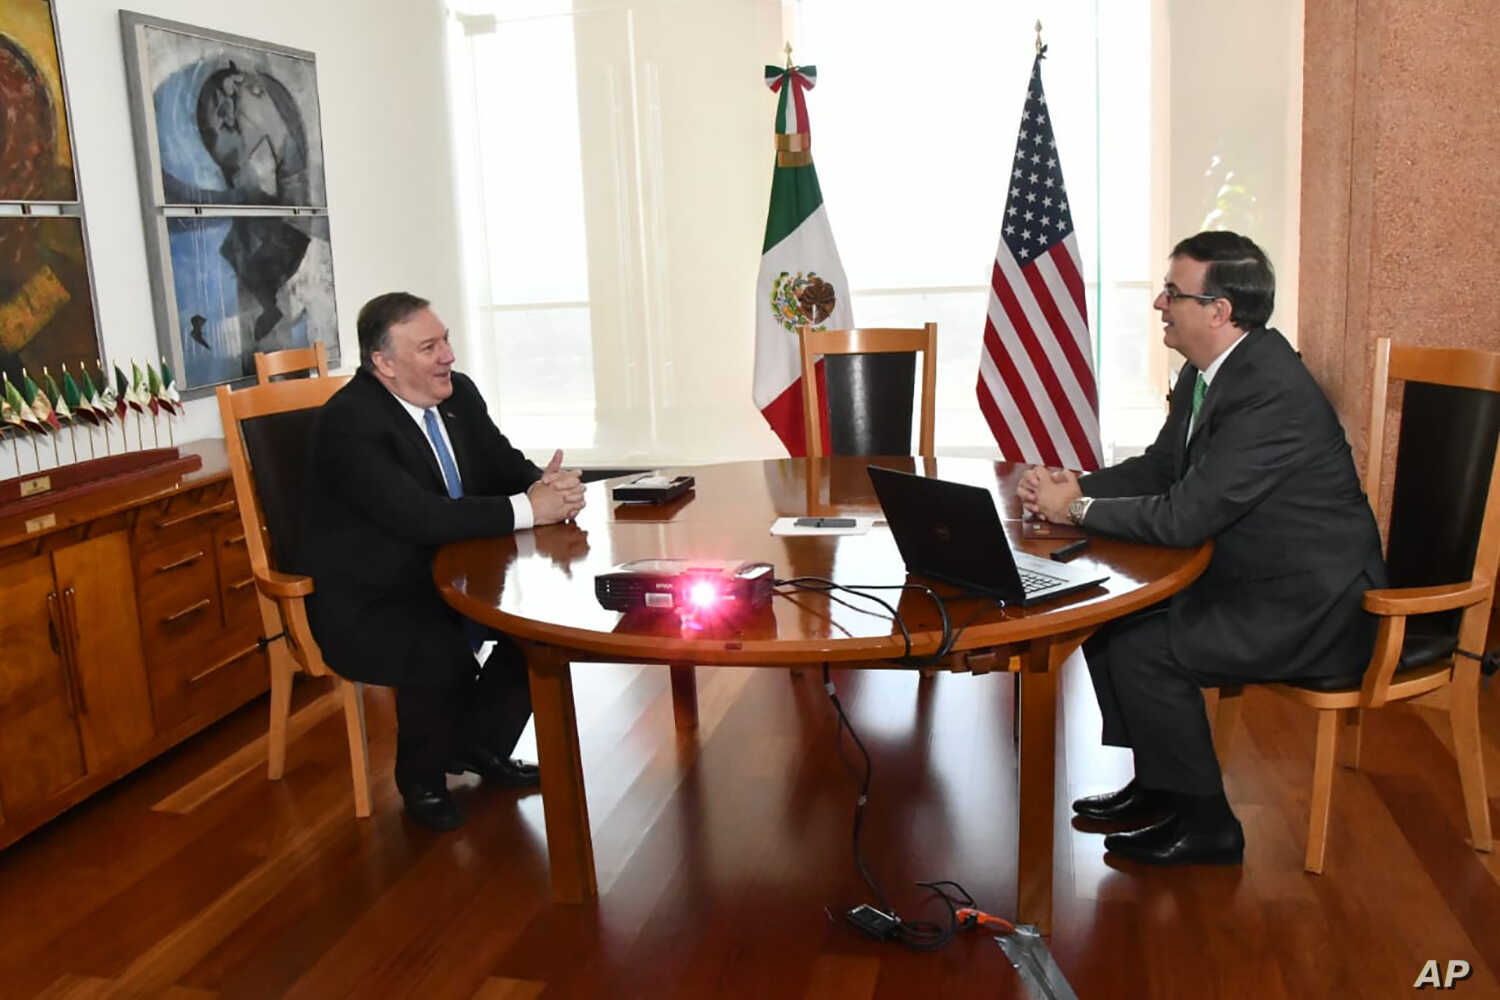 In this handout photo released by the Mexican Government Press Office, U.S. Secretary of State Mike Pompeo and his Mexican counterpart Marcelo Ebrard meet in Mexico City, Sunday morning, July 21, 2019. Pompeo's visit comes at the halfway point of a…